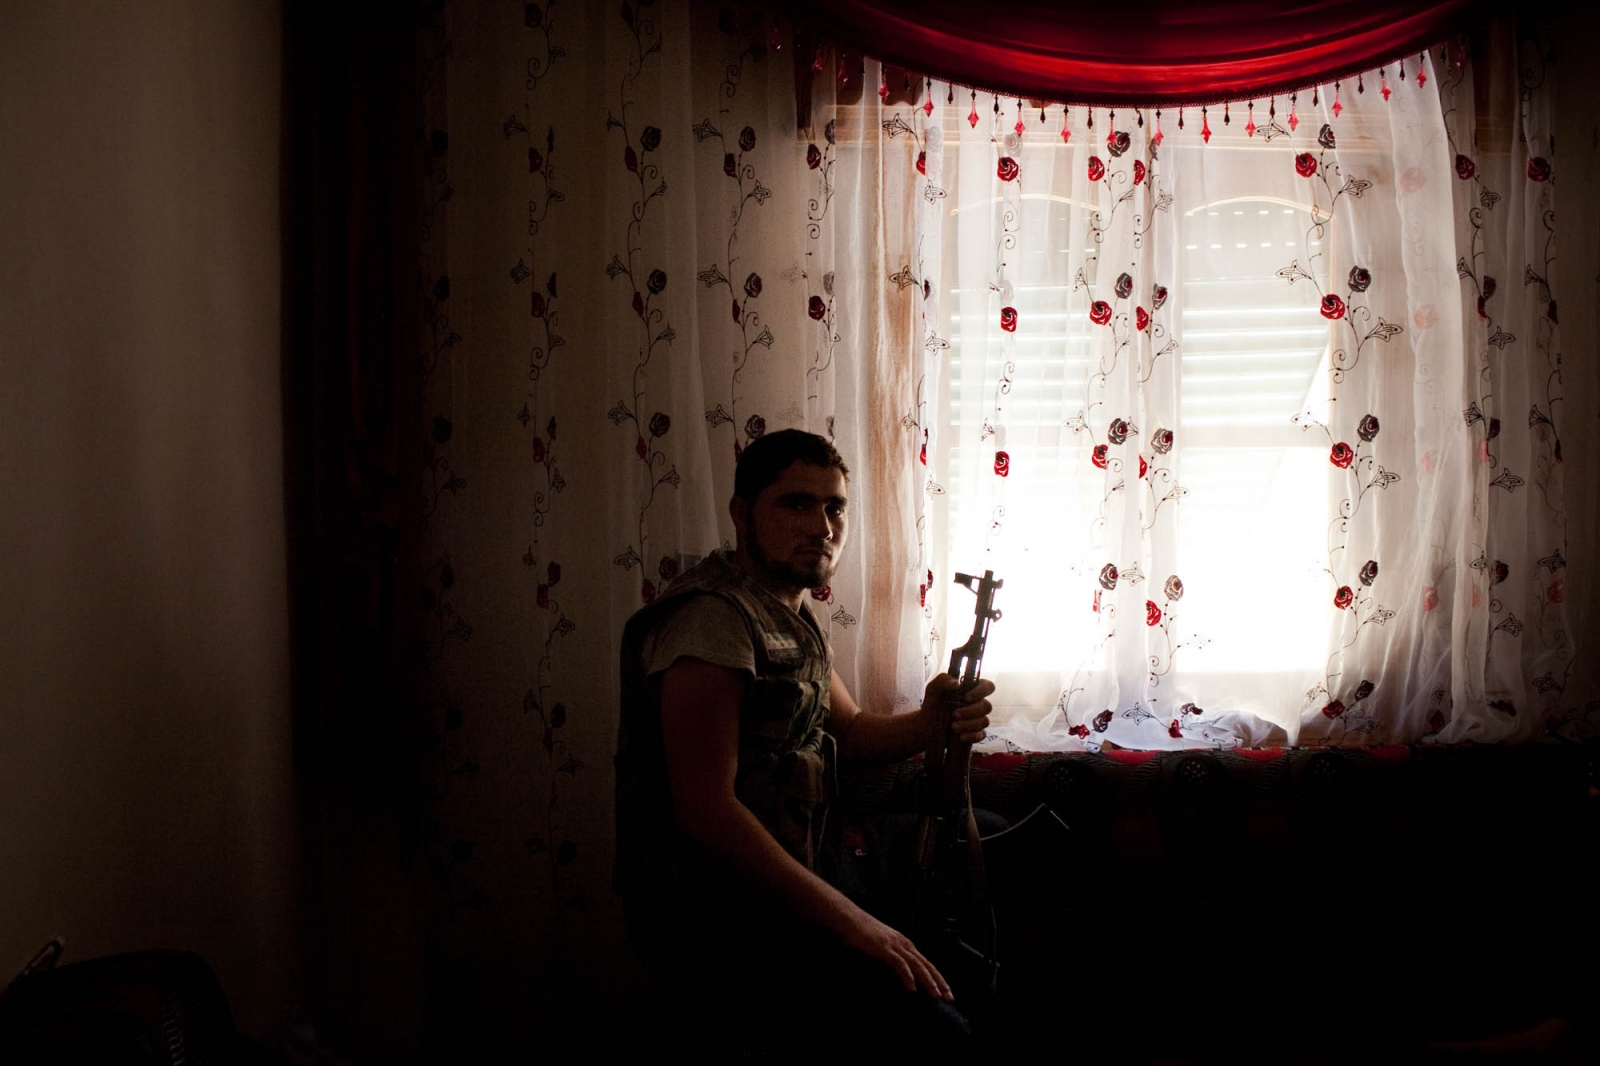 A fighter from the Free Syrian Army sits in an apartment on the lookout for Syrian Army tanks in the neighborhood of Salaheddin in Aleppo, Syria, on Tuesday, July 31, 2012. Fierce fighting erupted in Aleppo, Syria's commercial capital and its most populated city, one and a half weeks ago as FSA fighters poured in to the city with weapons to fight against the Syrian Army. Many of the battles have taken place in restive neighborhoods such as Salaheddin, which saw the biggest anti-government protests throughout the revolution. Almost all of the estimated 200,000 residents have fled to other areas of Aleppo for safety, and many men have stayed to fight alongside the FSA.